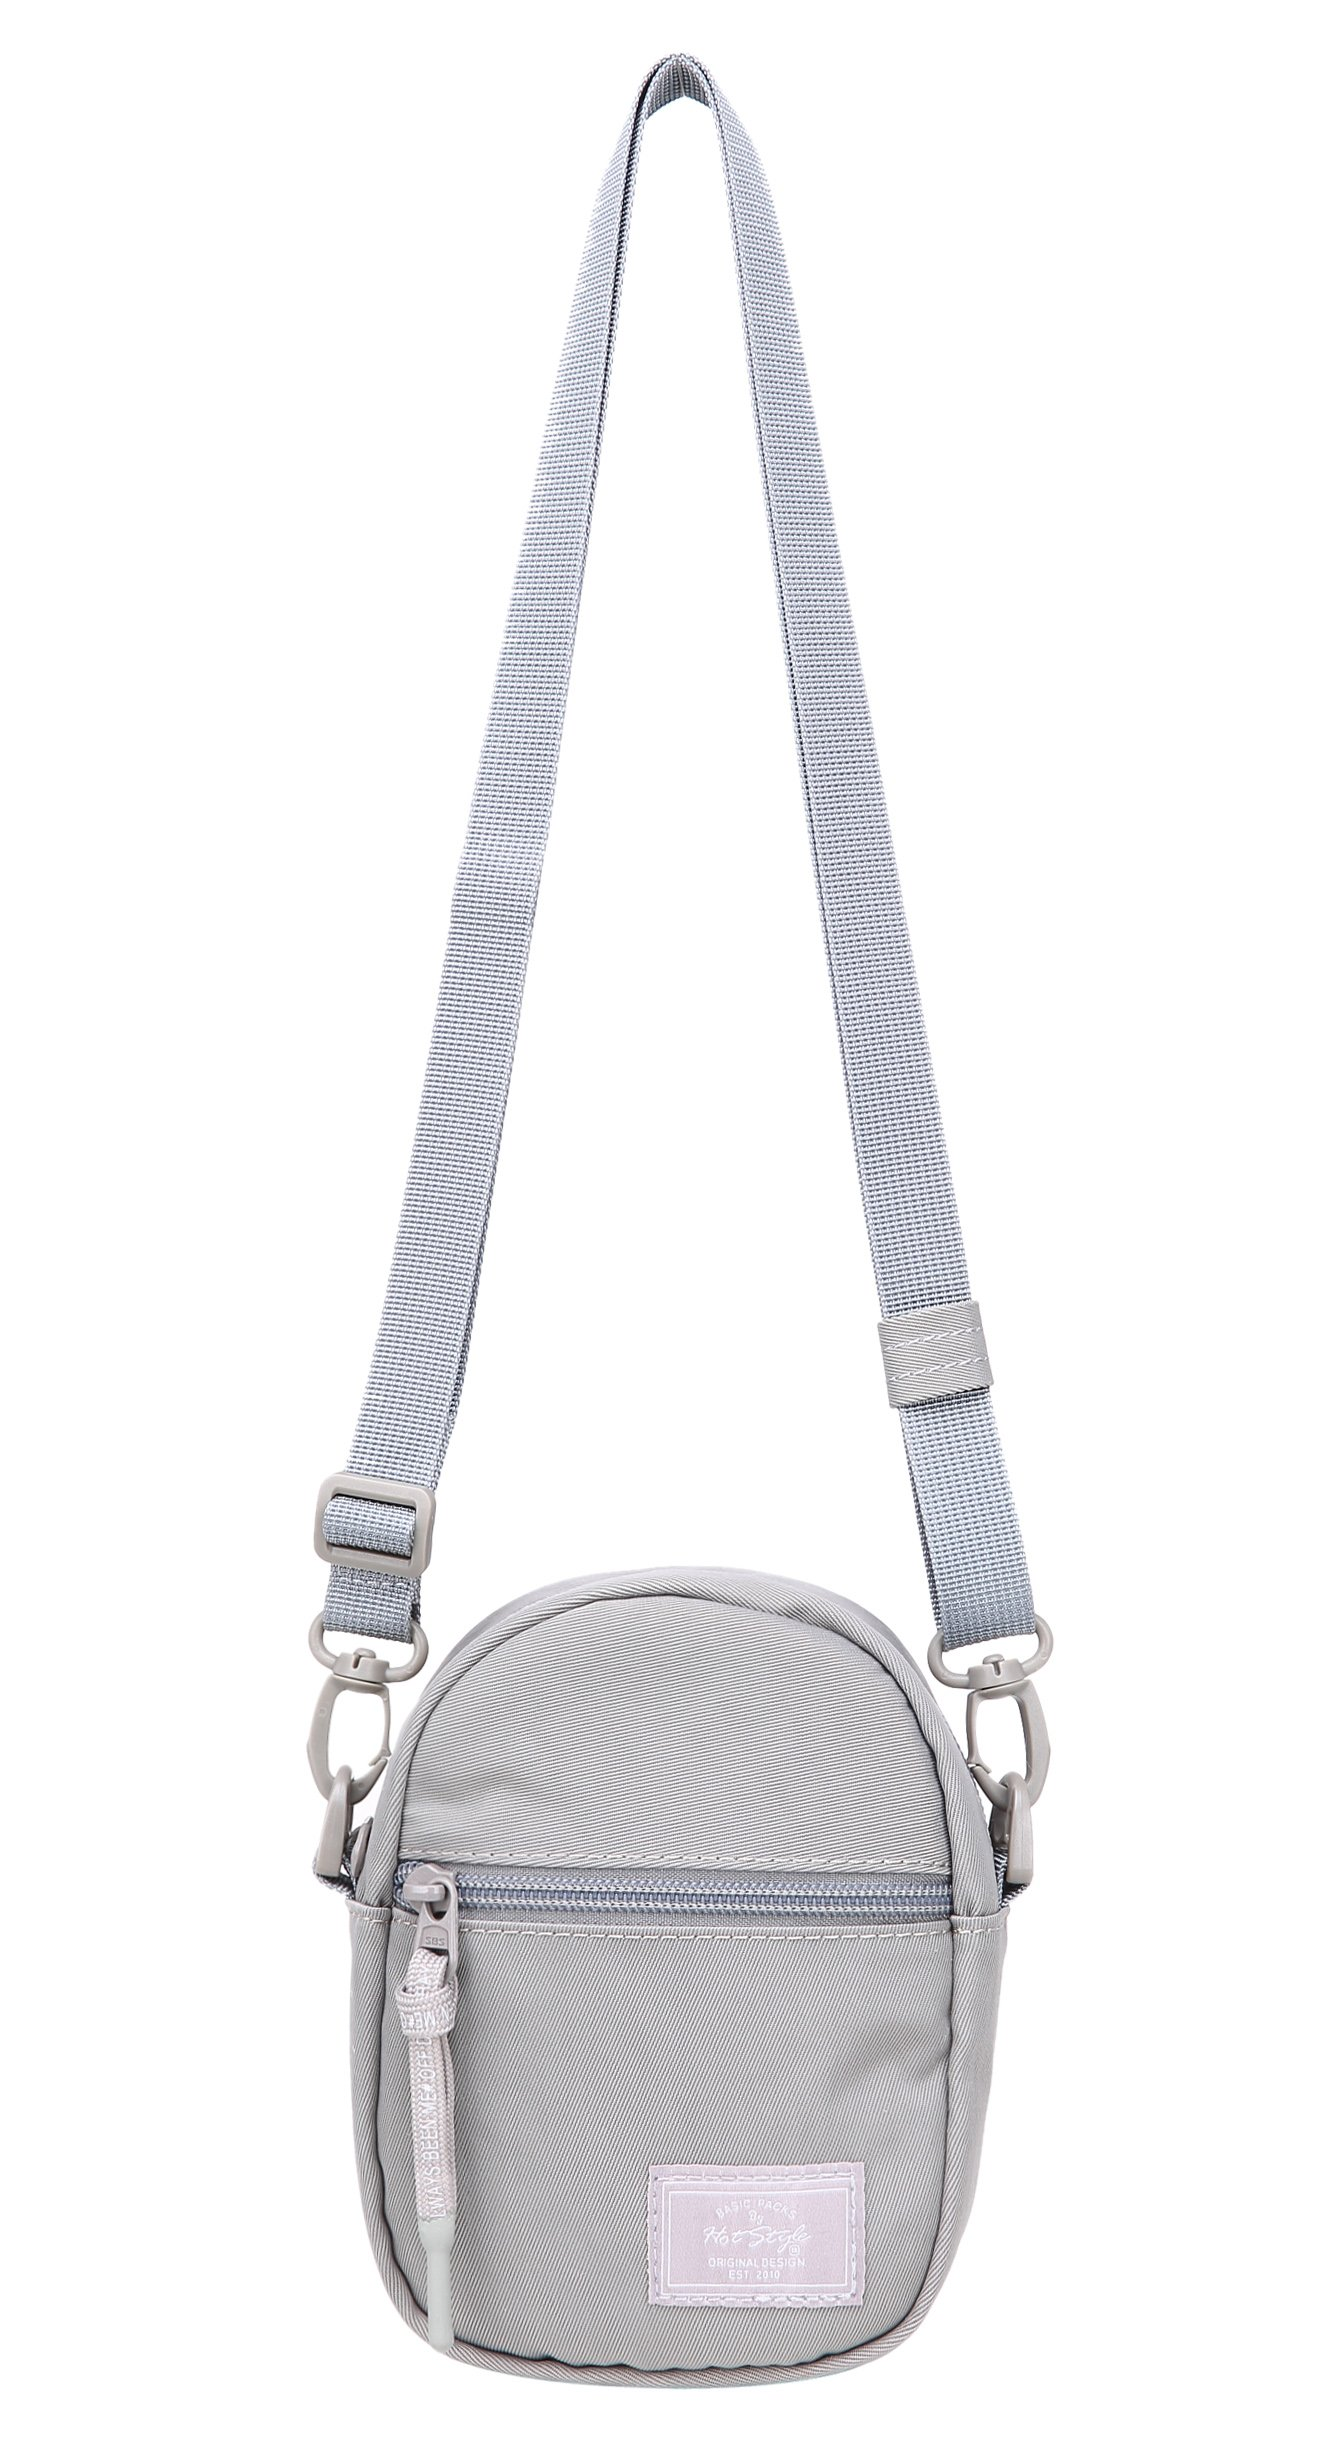 530s Small Cross Body Purse Little Phone Bag Cute for Travel   Silver